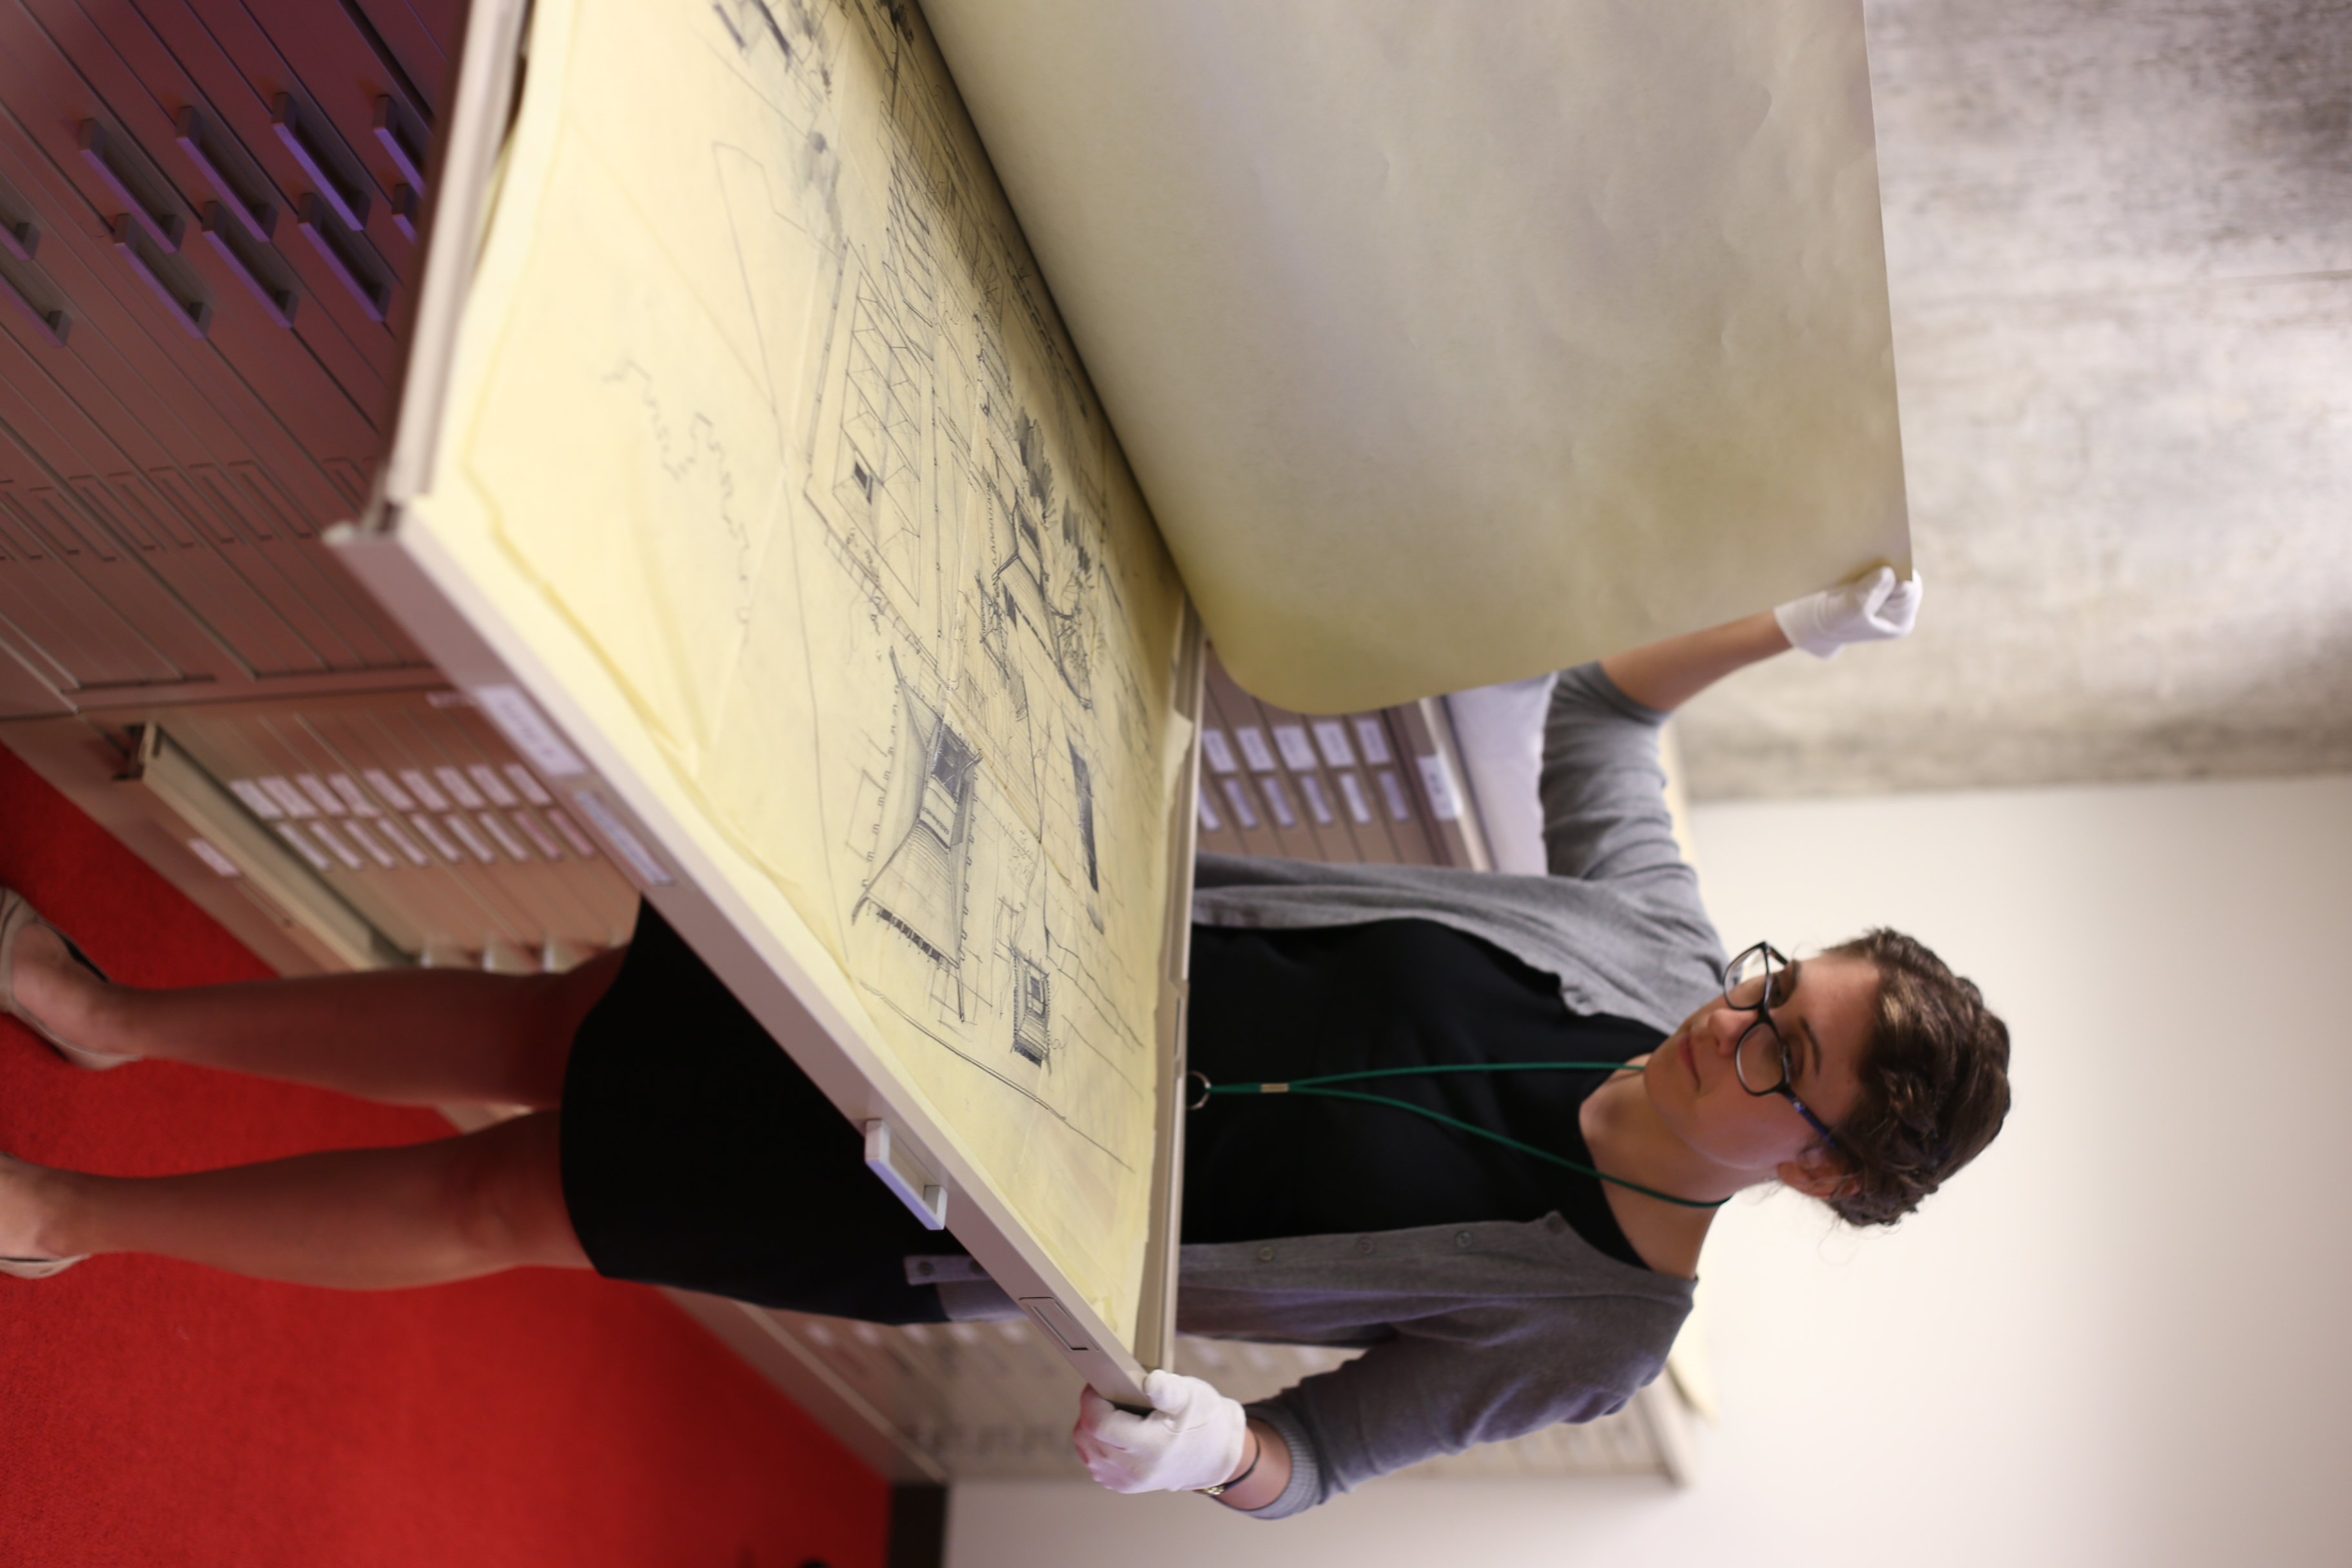 Staff person is opening a large folder that holds architectural drawings on tissue.